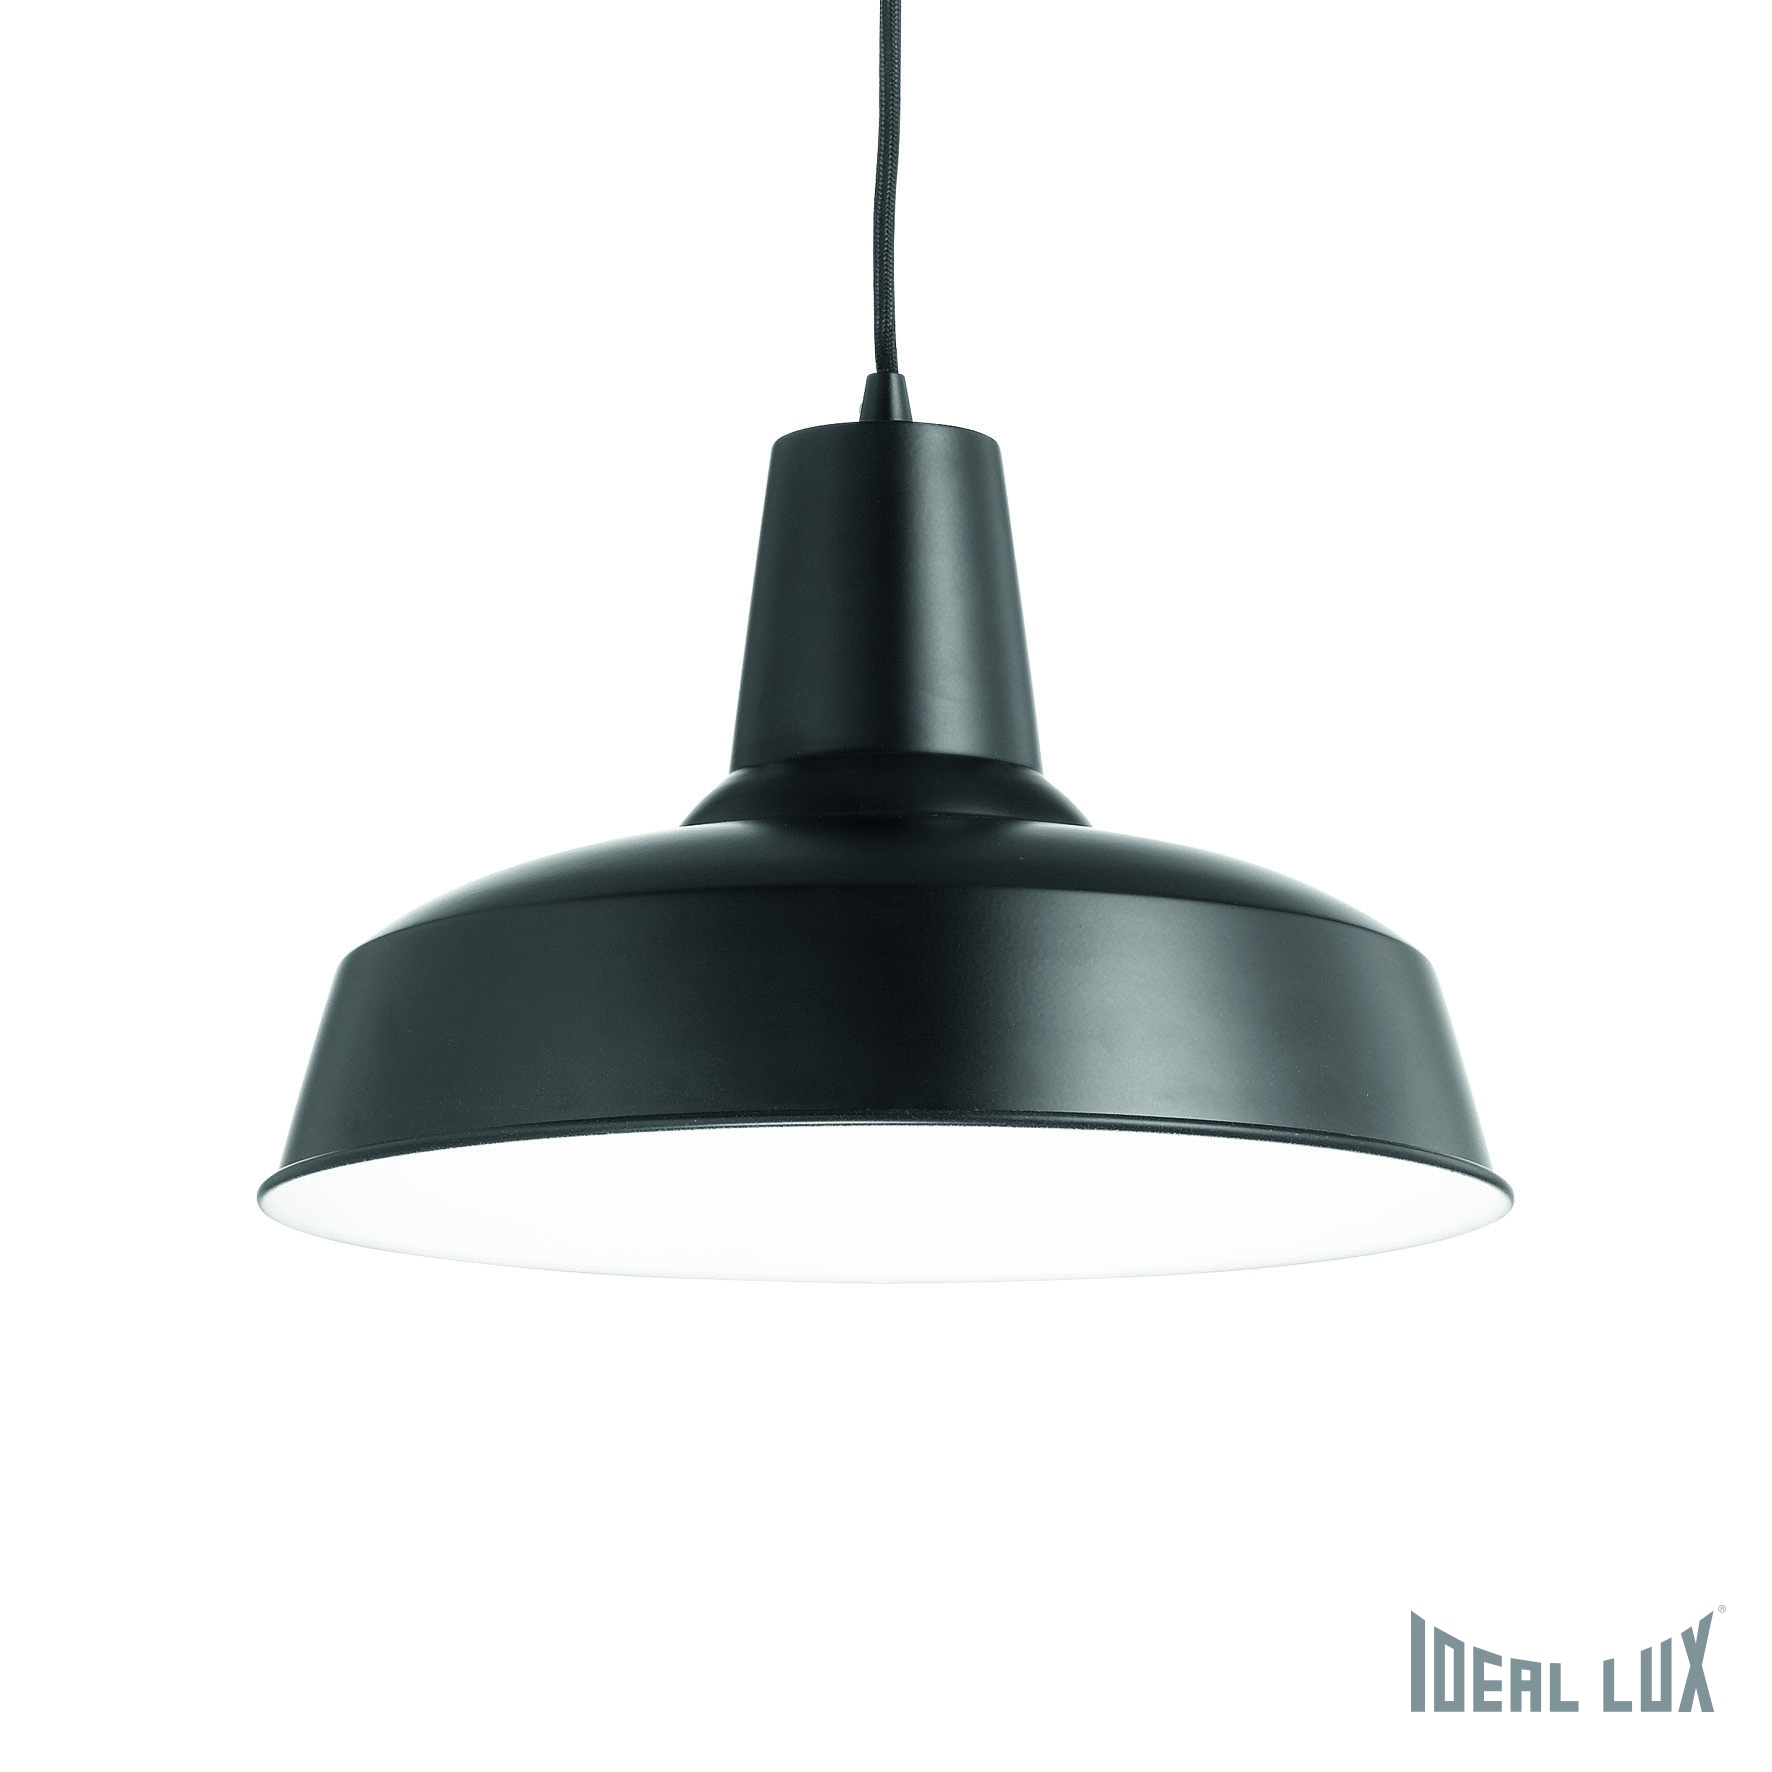 Светильник подвесной Ideal Lux Moby MOBY SP1 NERO